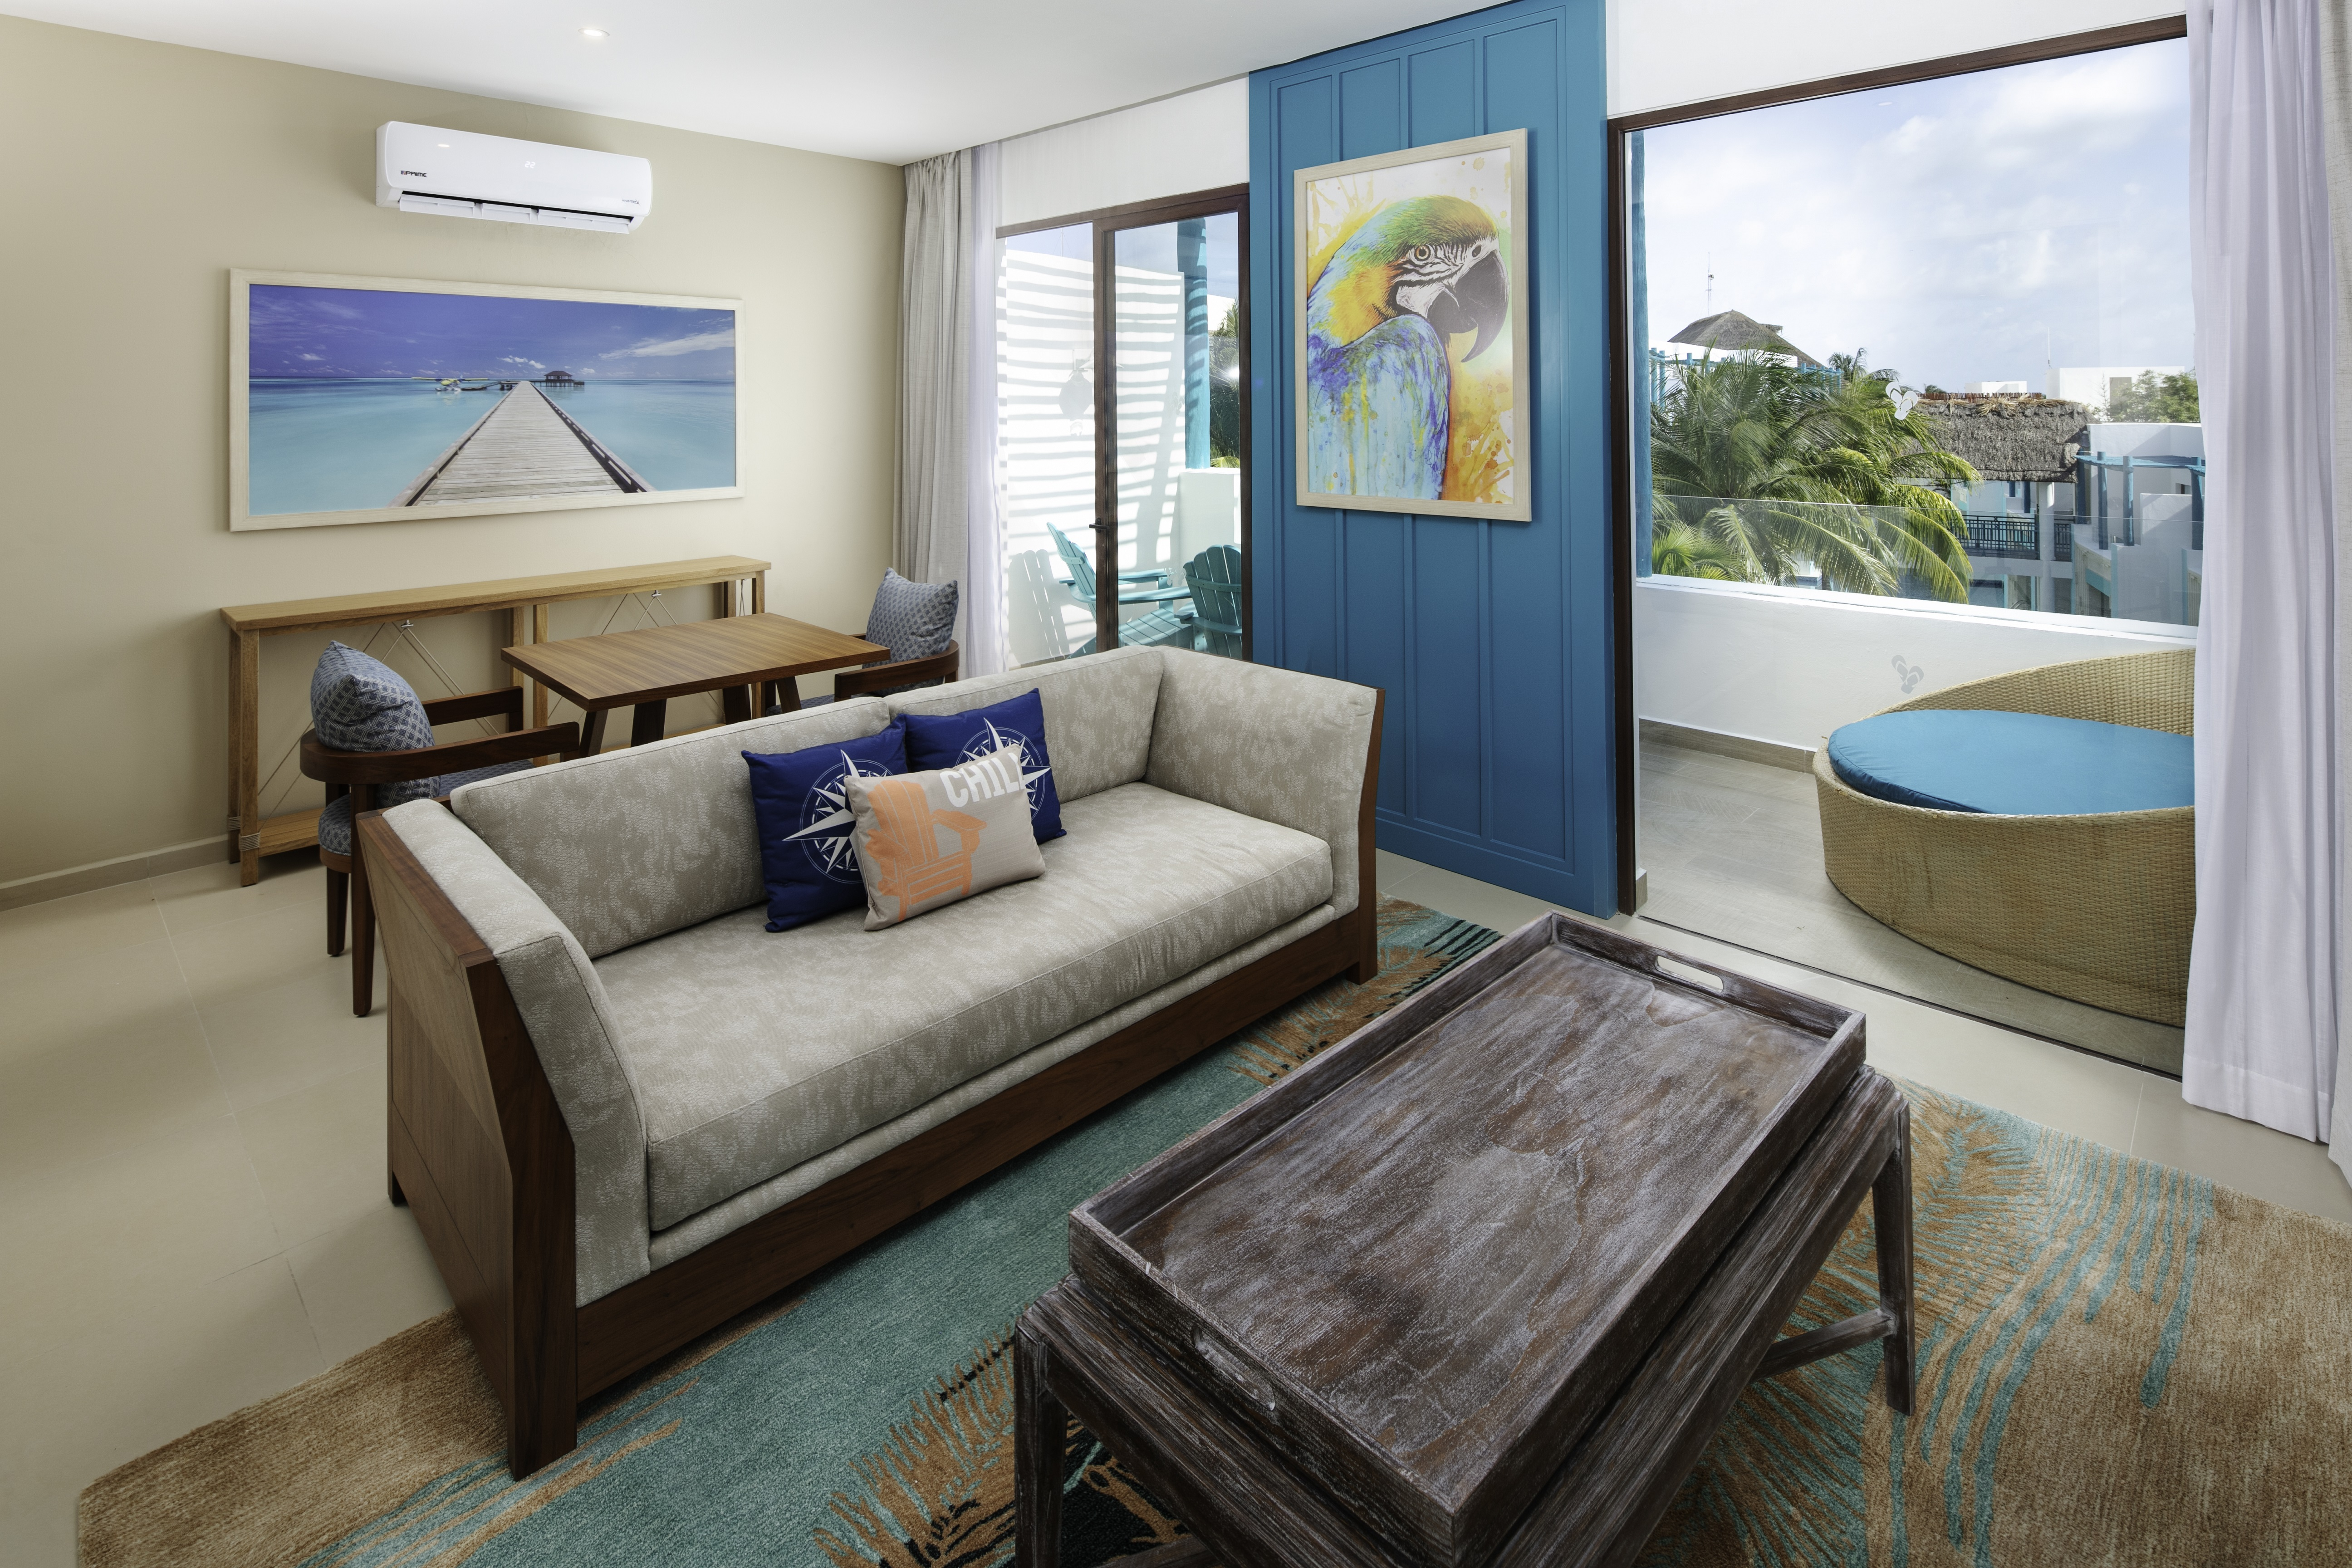 Photo of the Paradise Suite